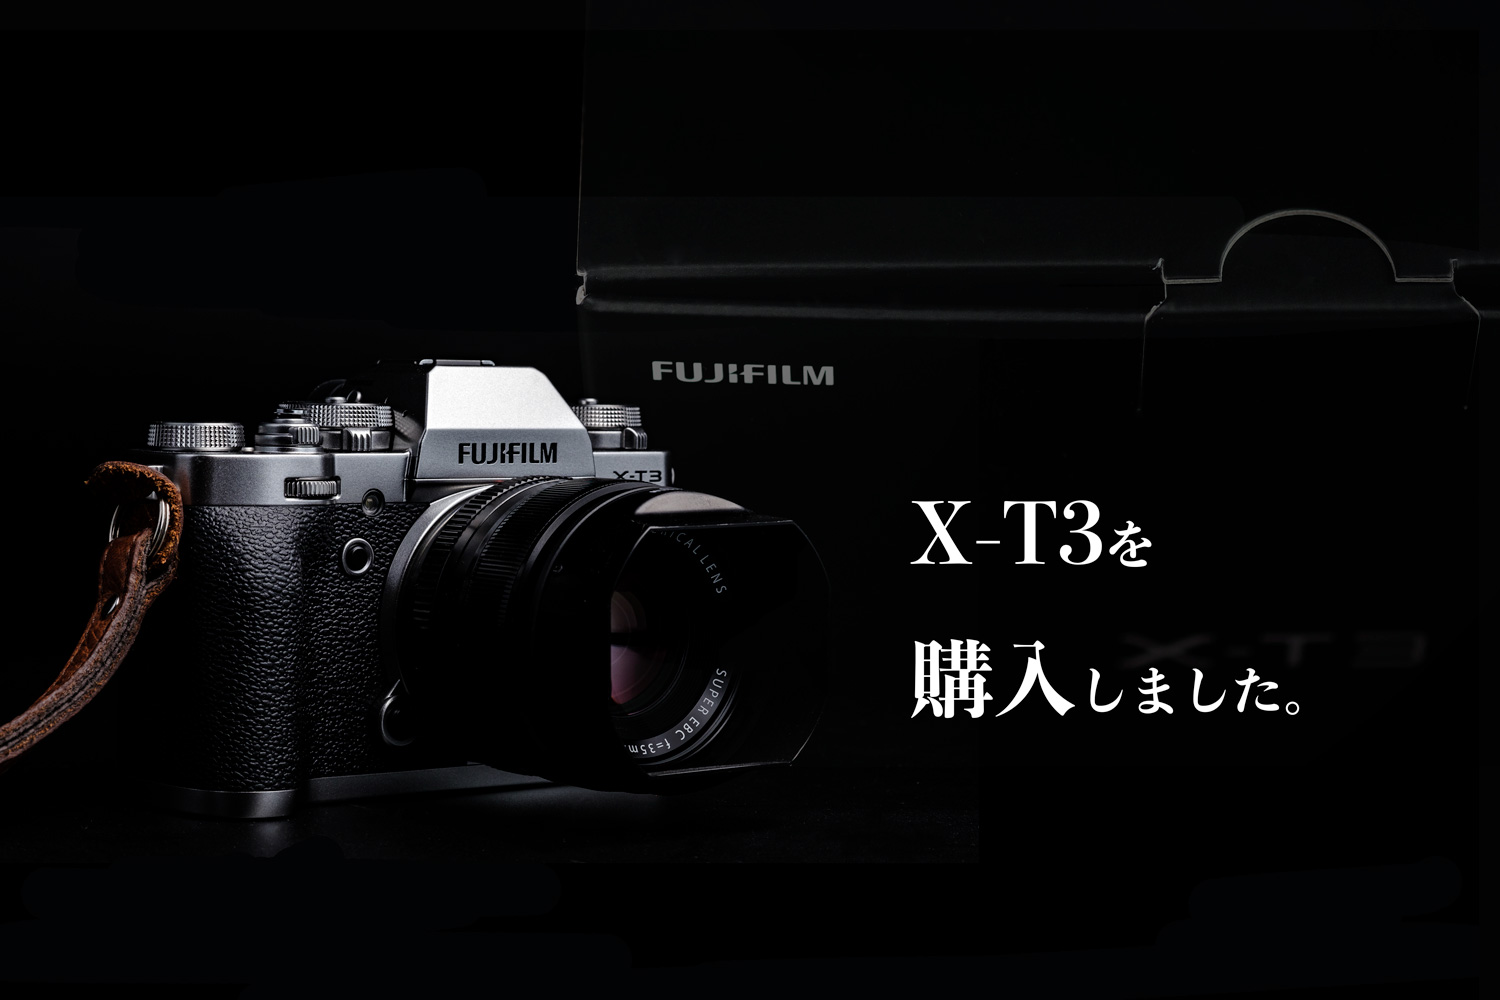 I bought FUJIFILM X-T3